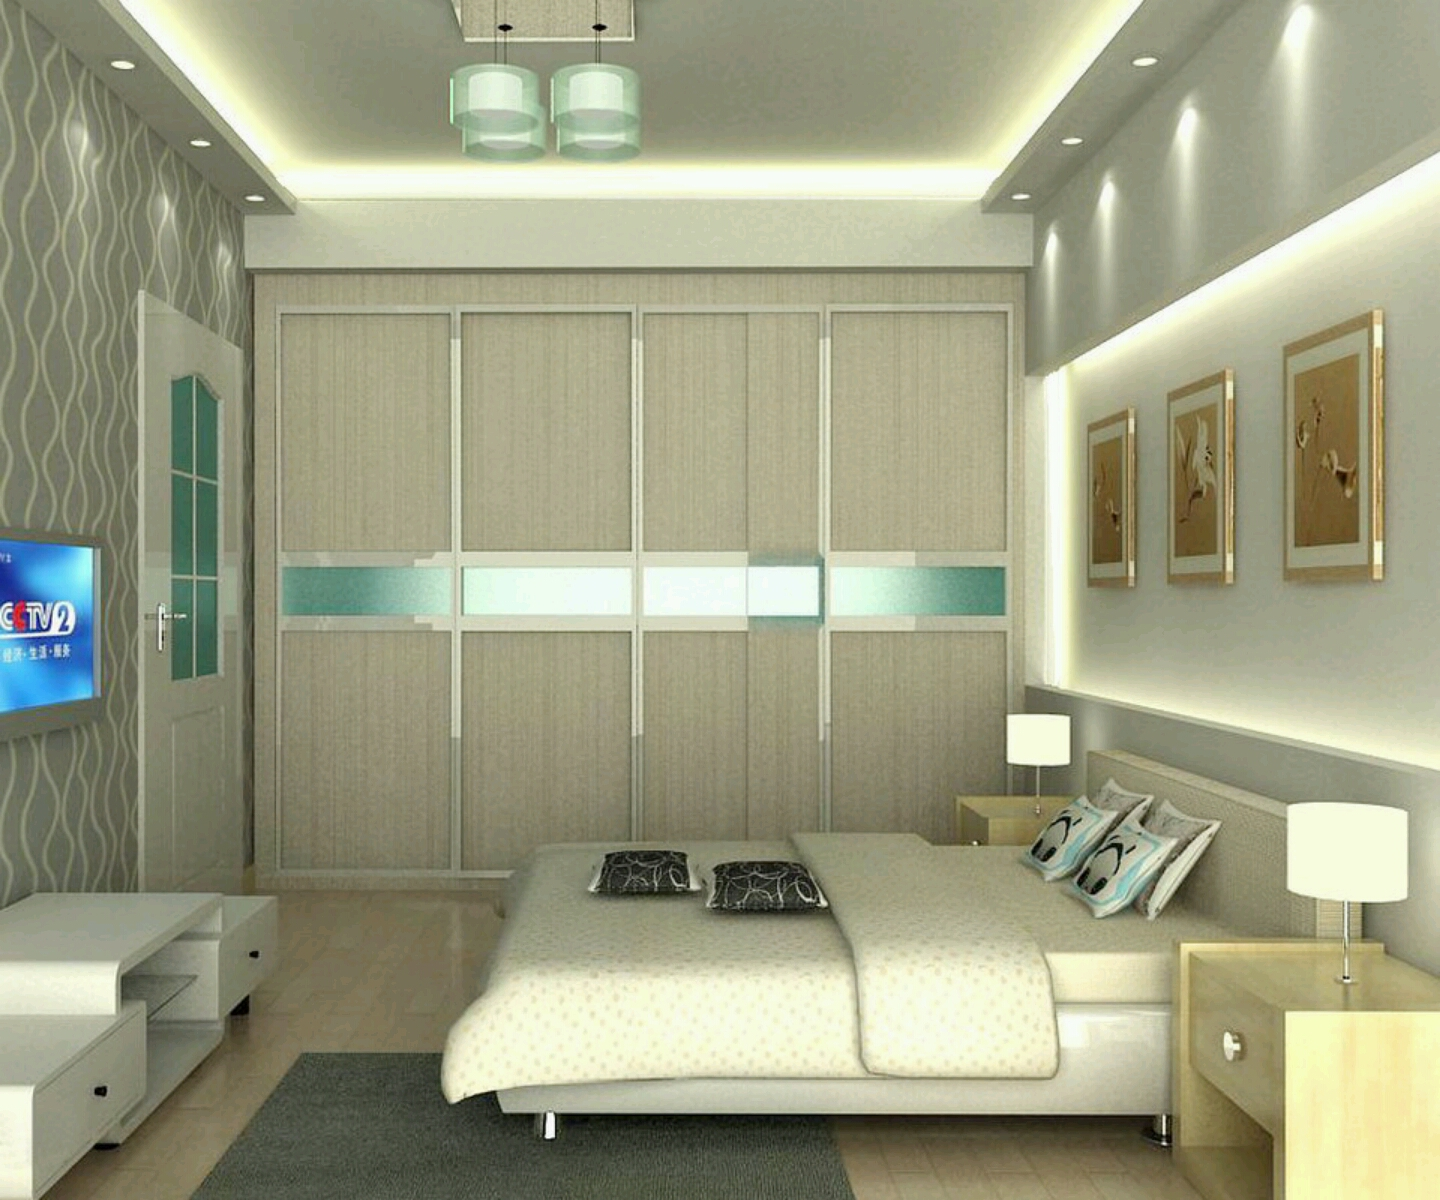 New home designs latest modern homes bedrooms designs for Latest interior design ideas